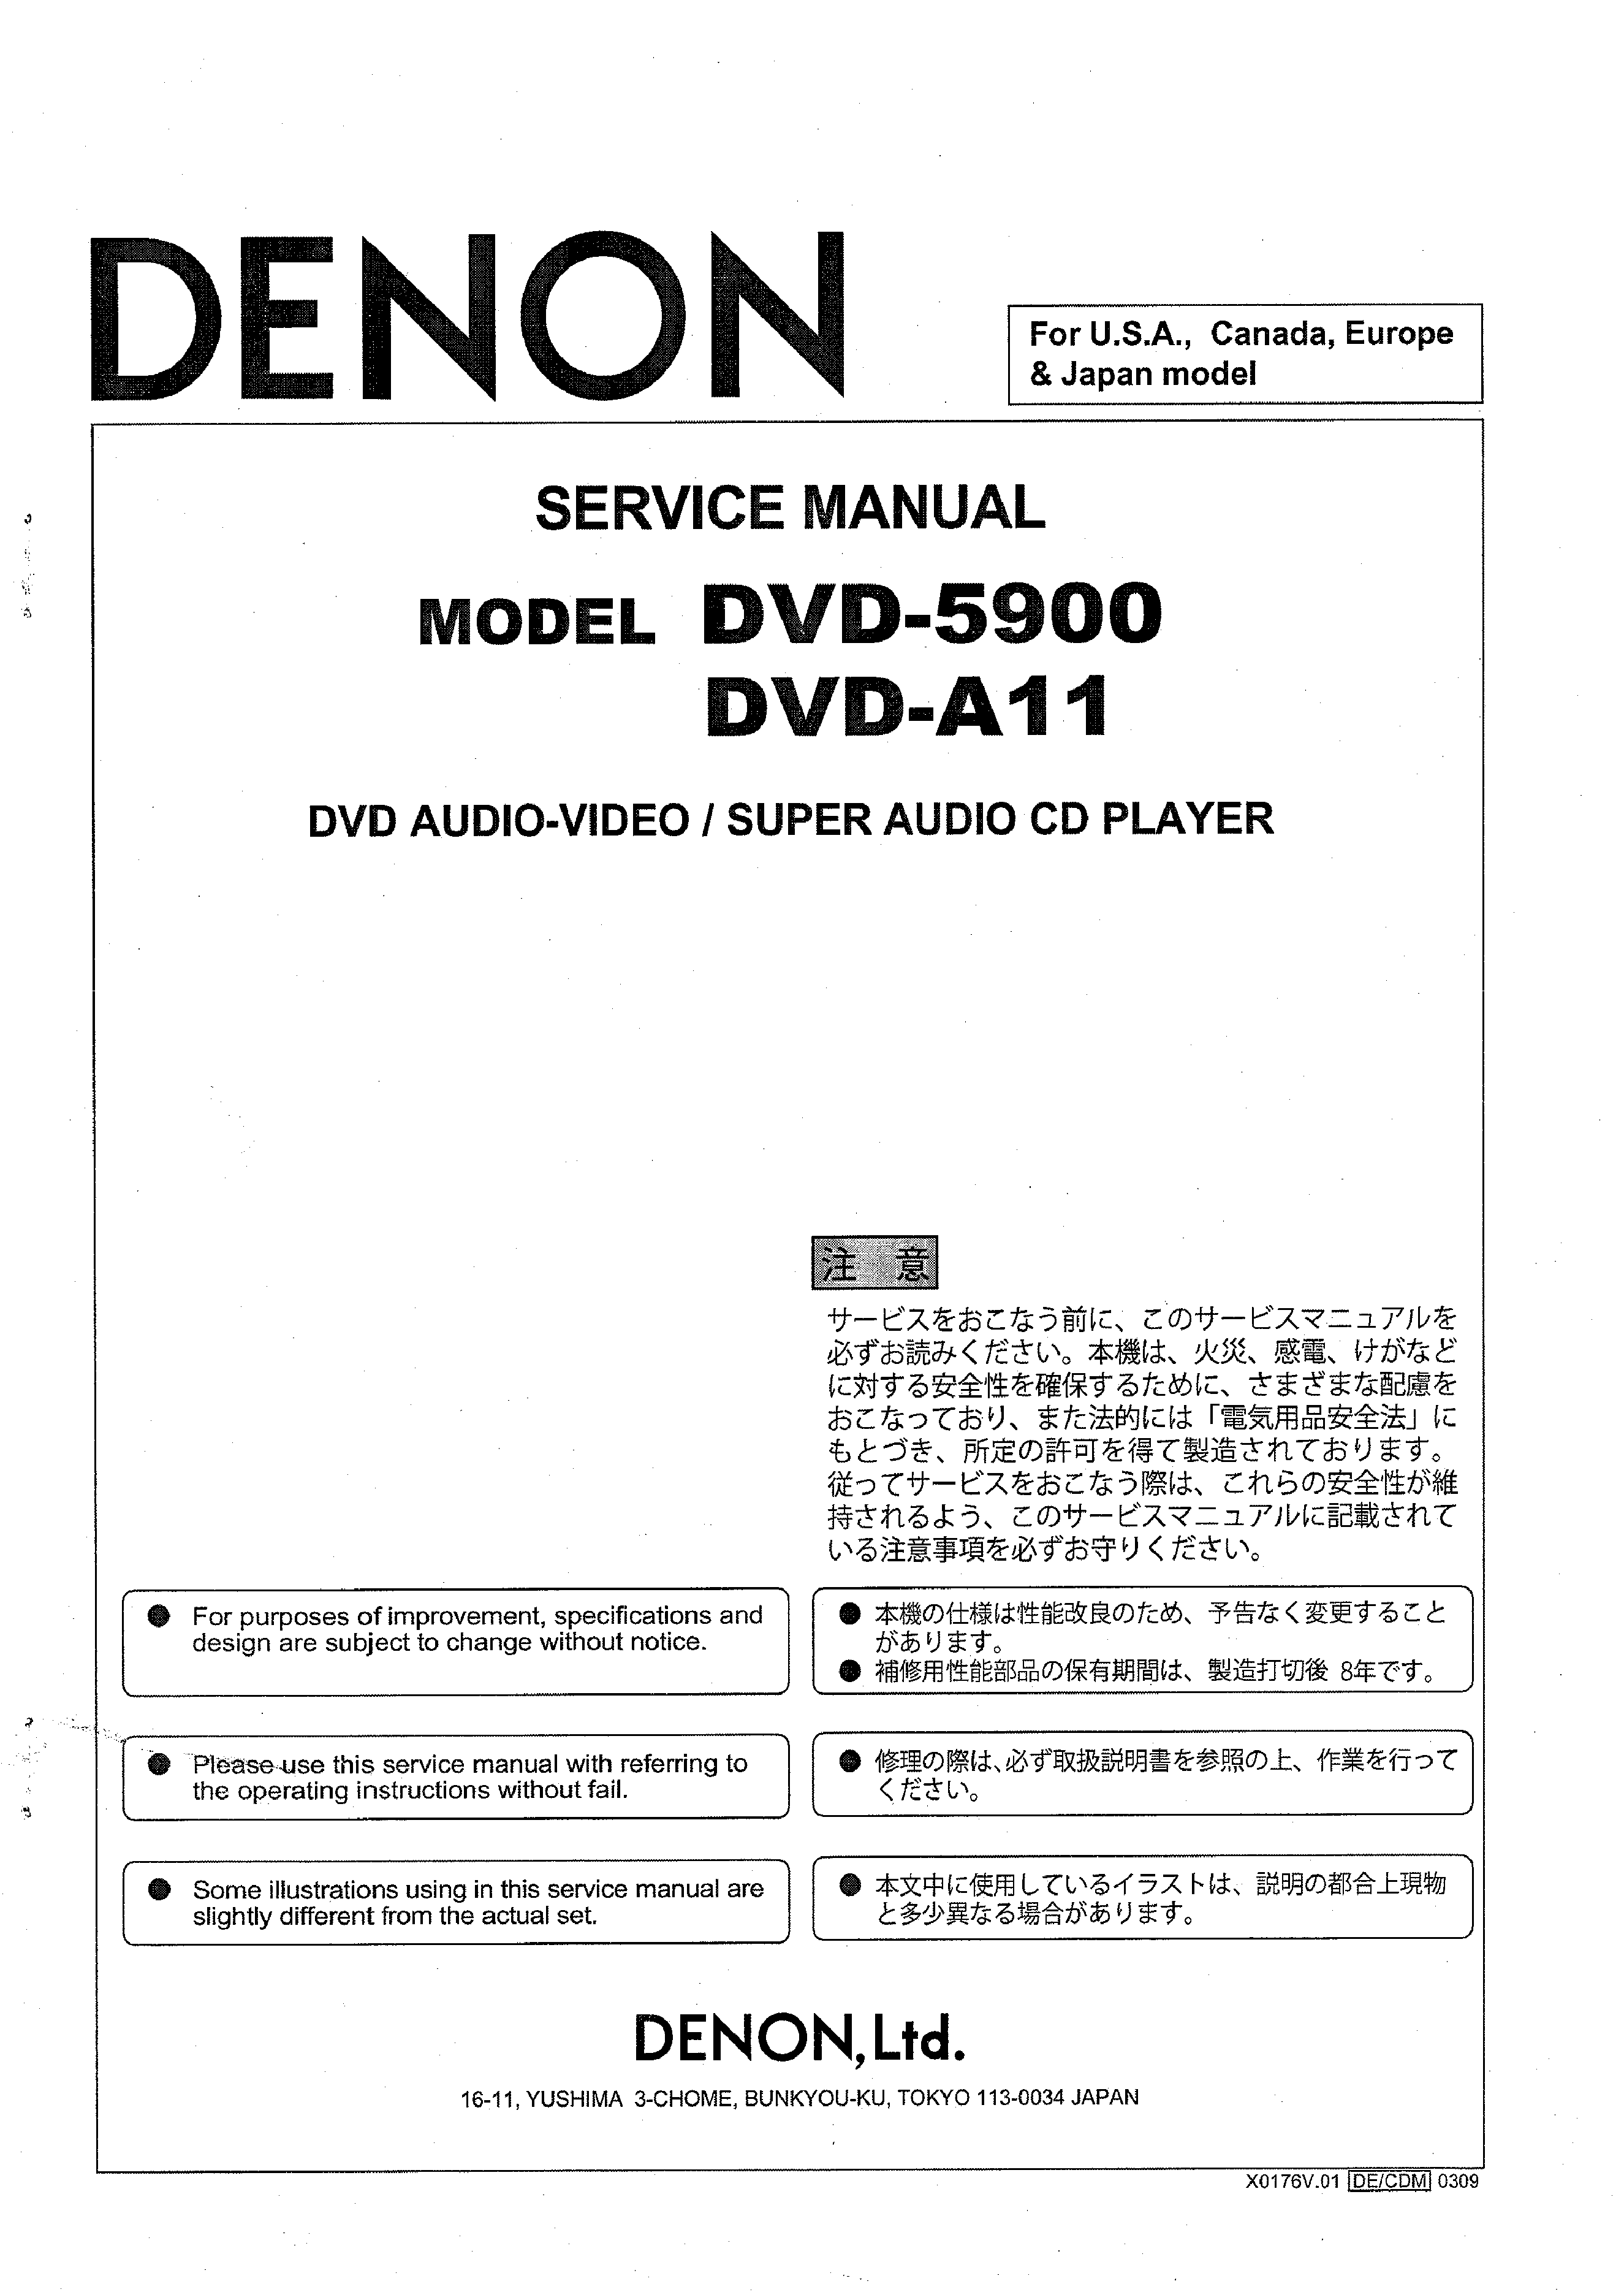 denon avc 1500 user manual free software and shareware. Black Bedroom Furniture Sets. Home Design Ideas